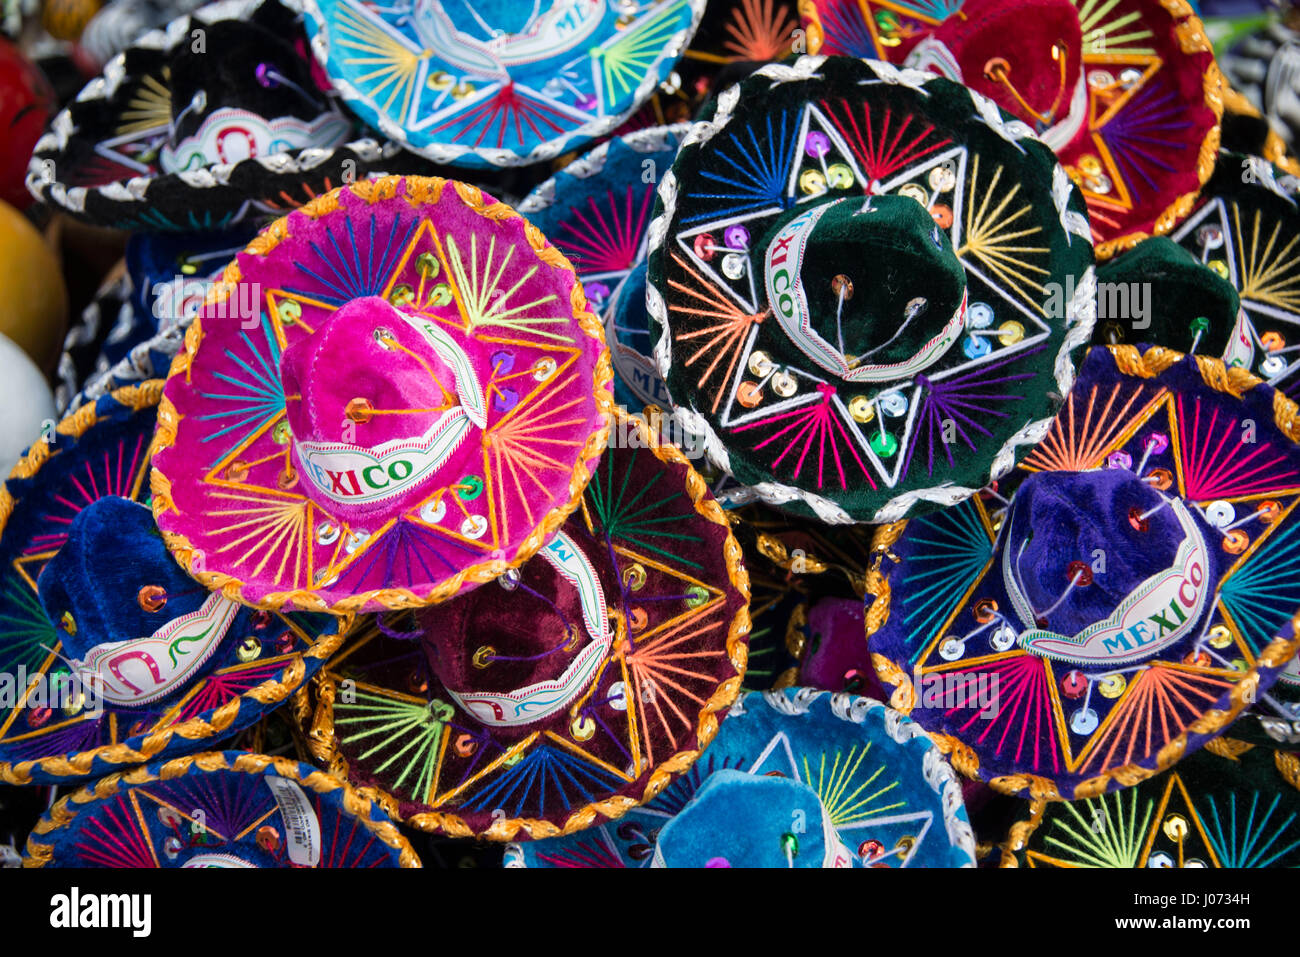 Colorful Mexican sombreros at market in Mexico Stock Photo